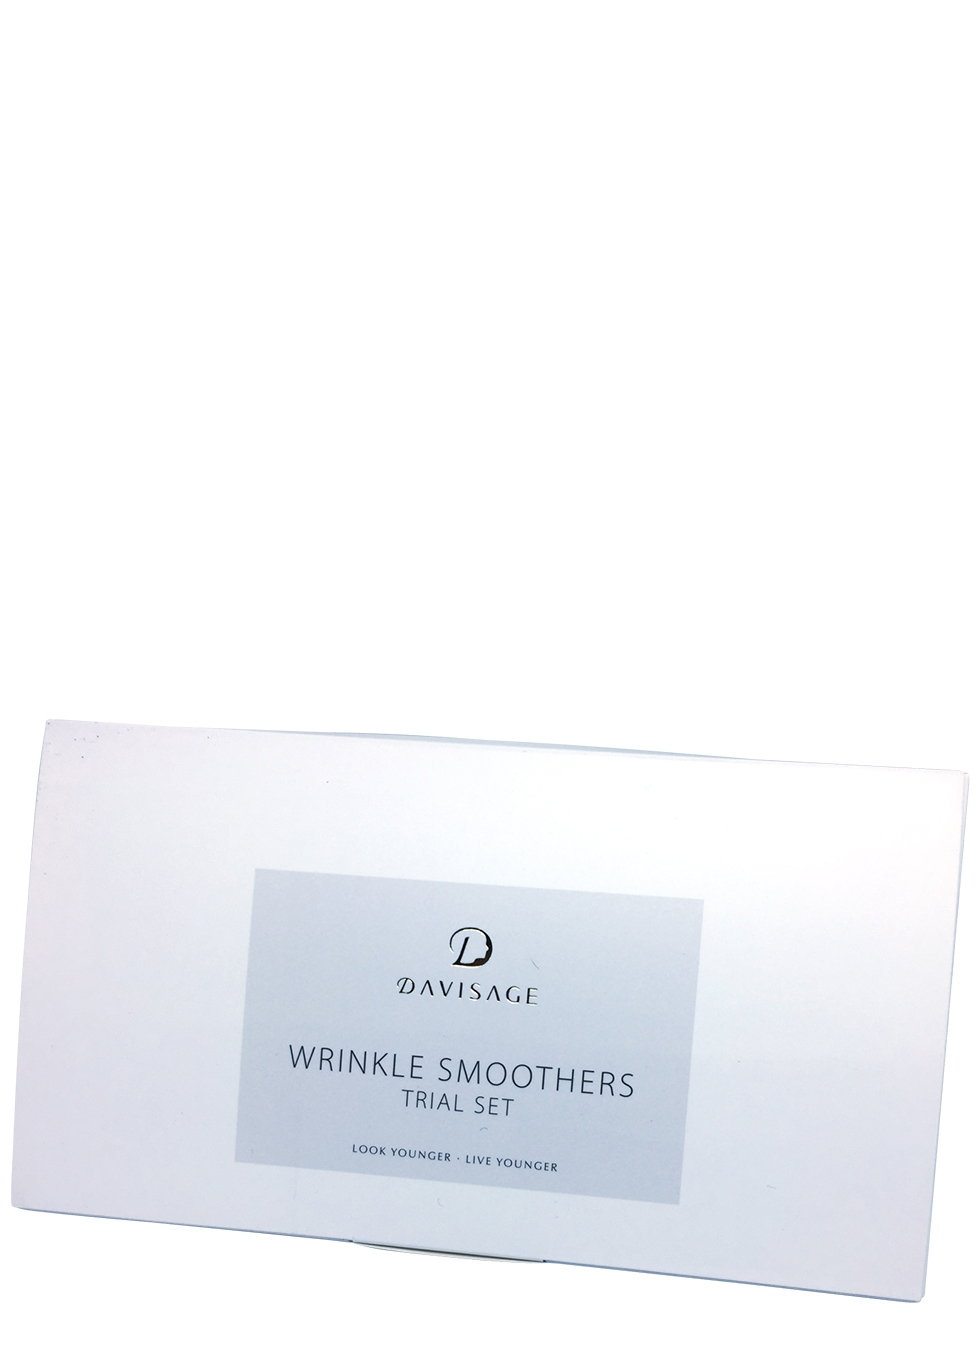 Wrinkle Smoothers Trial Set